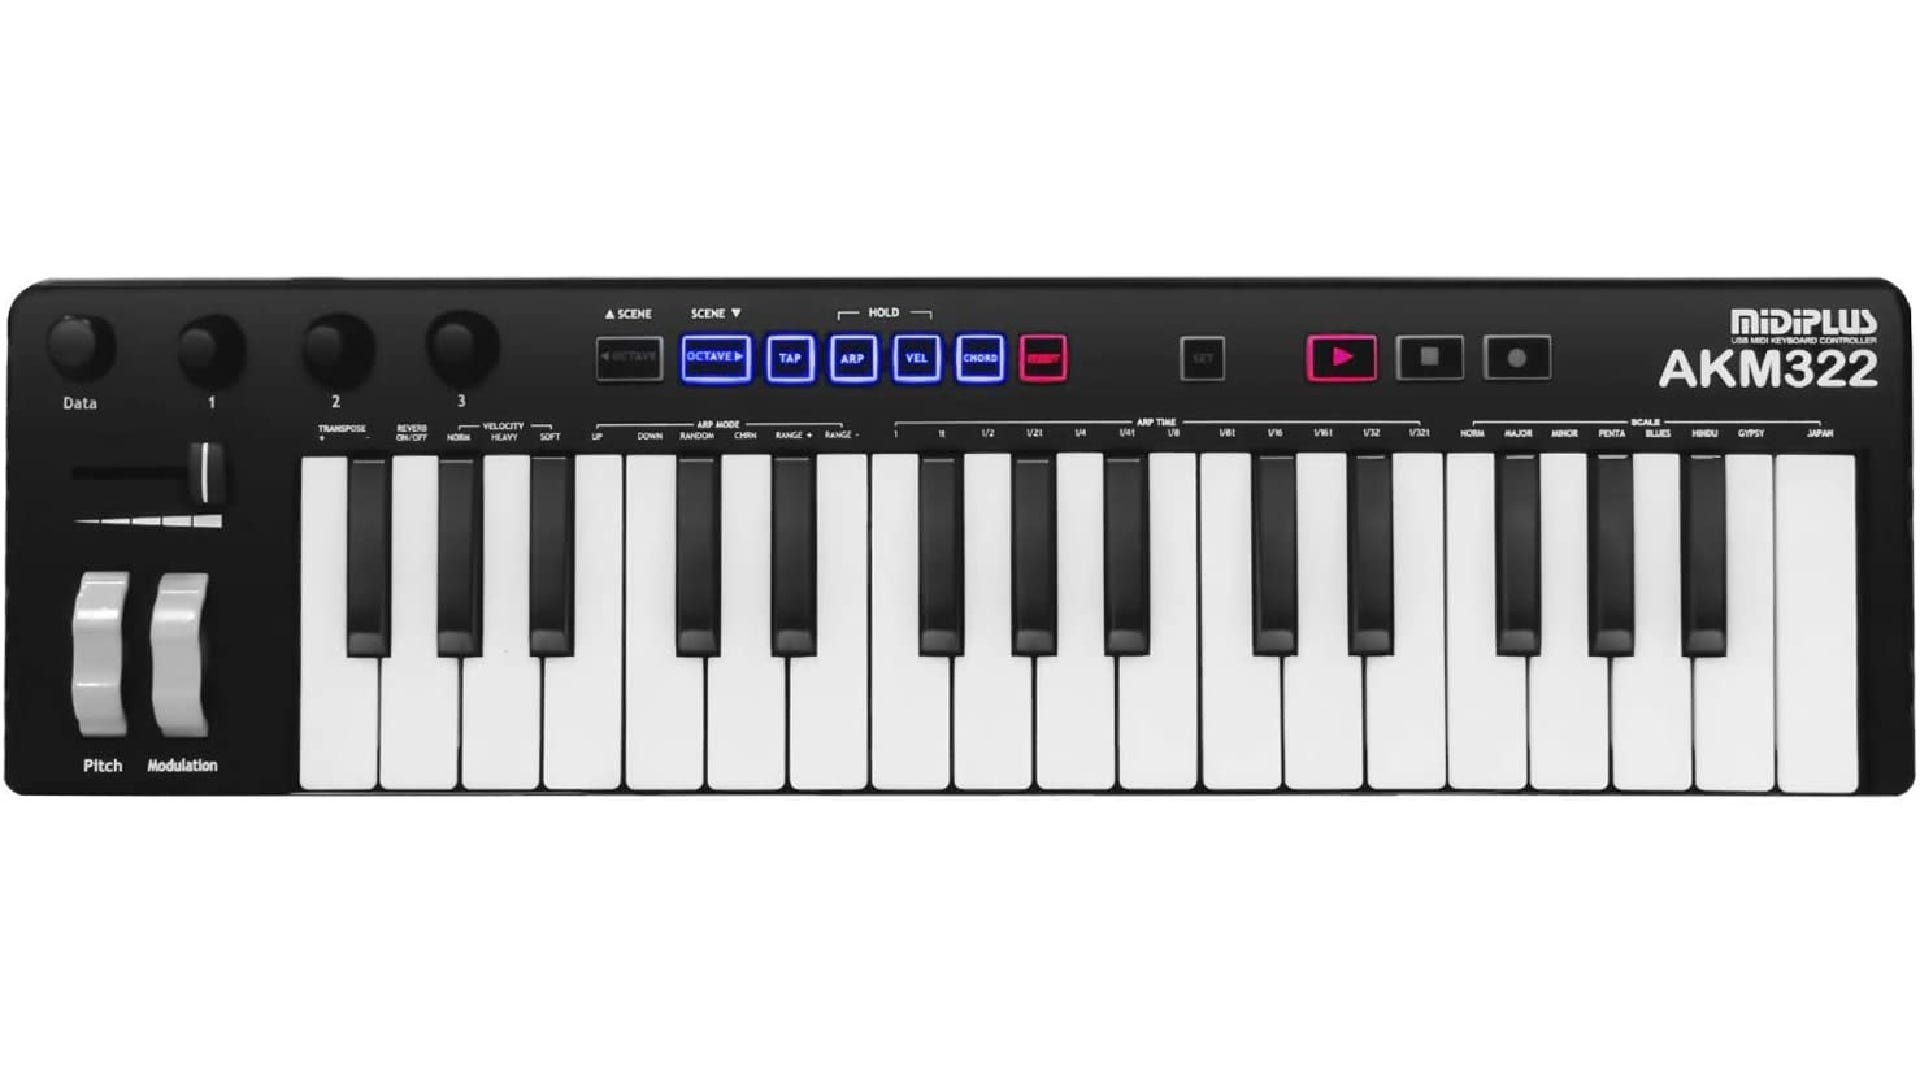 A MIDI keyboard with 32 piano keys, 11 buttons, three knobs, and pitch and modulation controls.